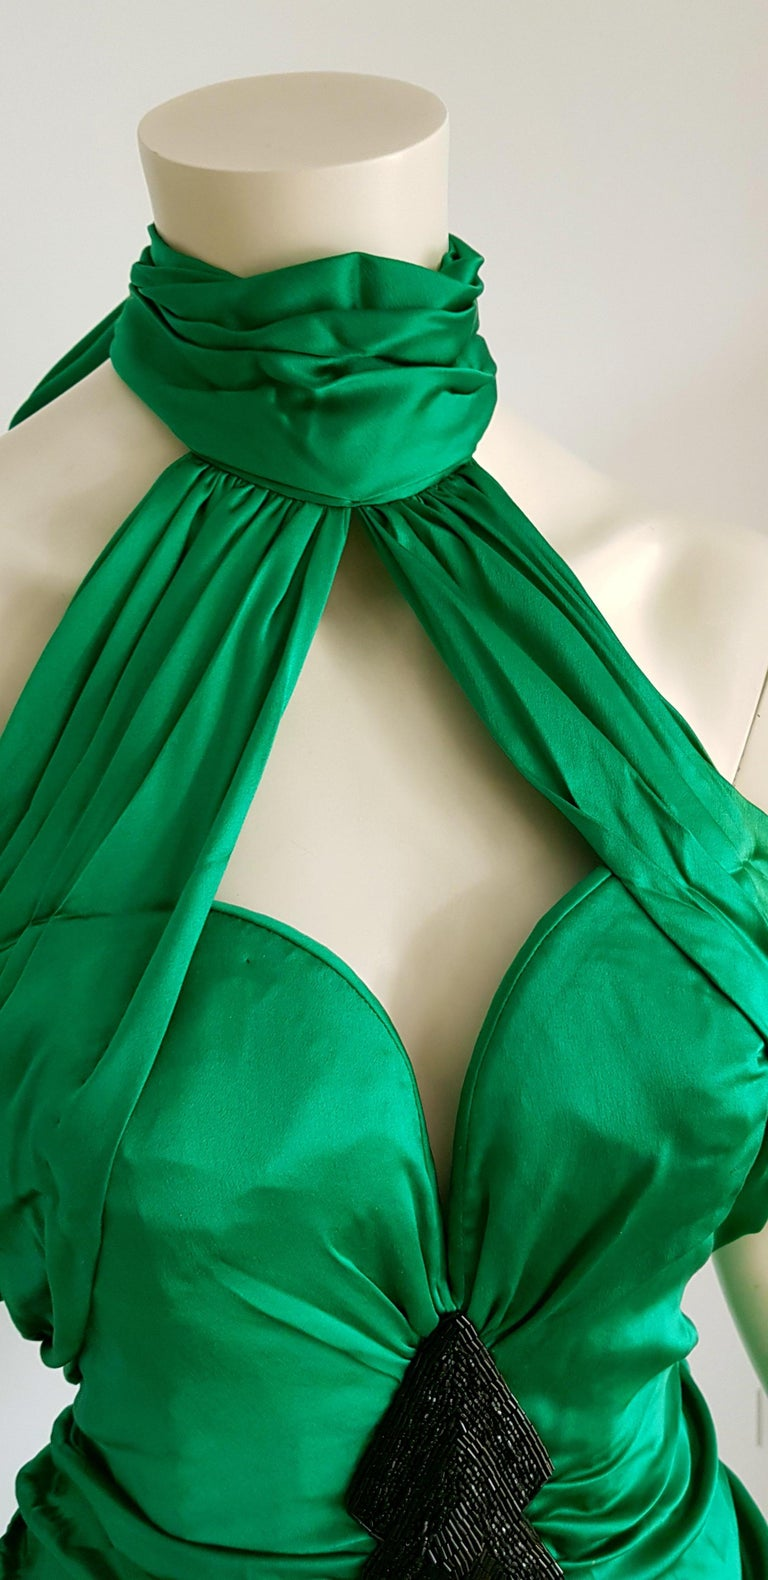 VALENTINO Haute Couture Green Silk Gown Evening Dress - Unworn, New For Sale 3